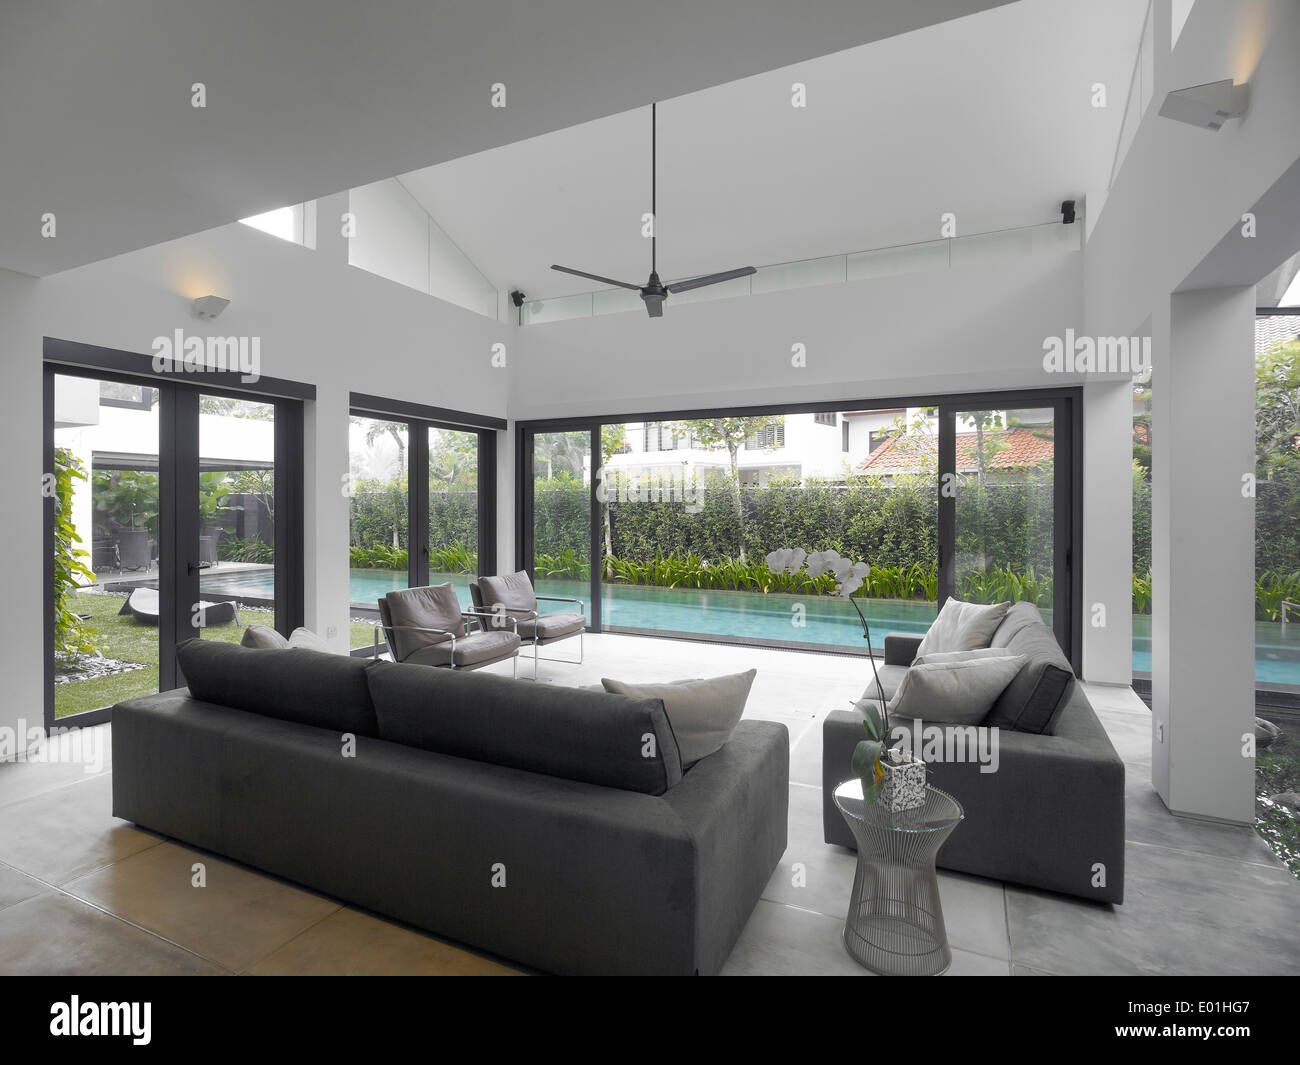 Living Room With View Of Swimming Pool In Modern House Swiss Club Stock Photo Royalty Free